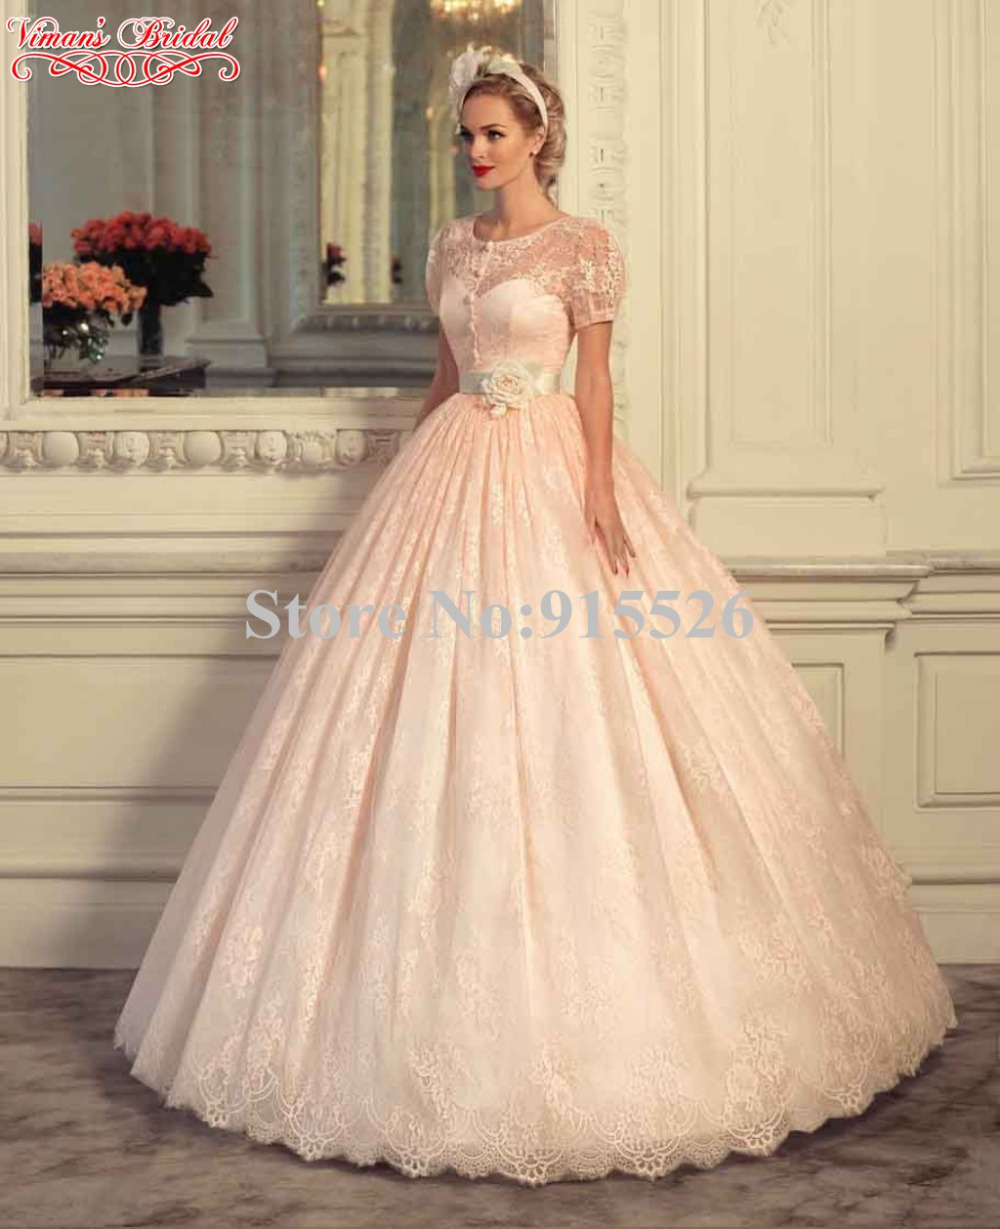 2015 Vimanu0027s Bridal Peach Colored Wedding Dresses Appliques Lace Floor  Length Ball Gown Vestidos With Sashes Free Shipping AX37 In Wedding Dresses  From ...